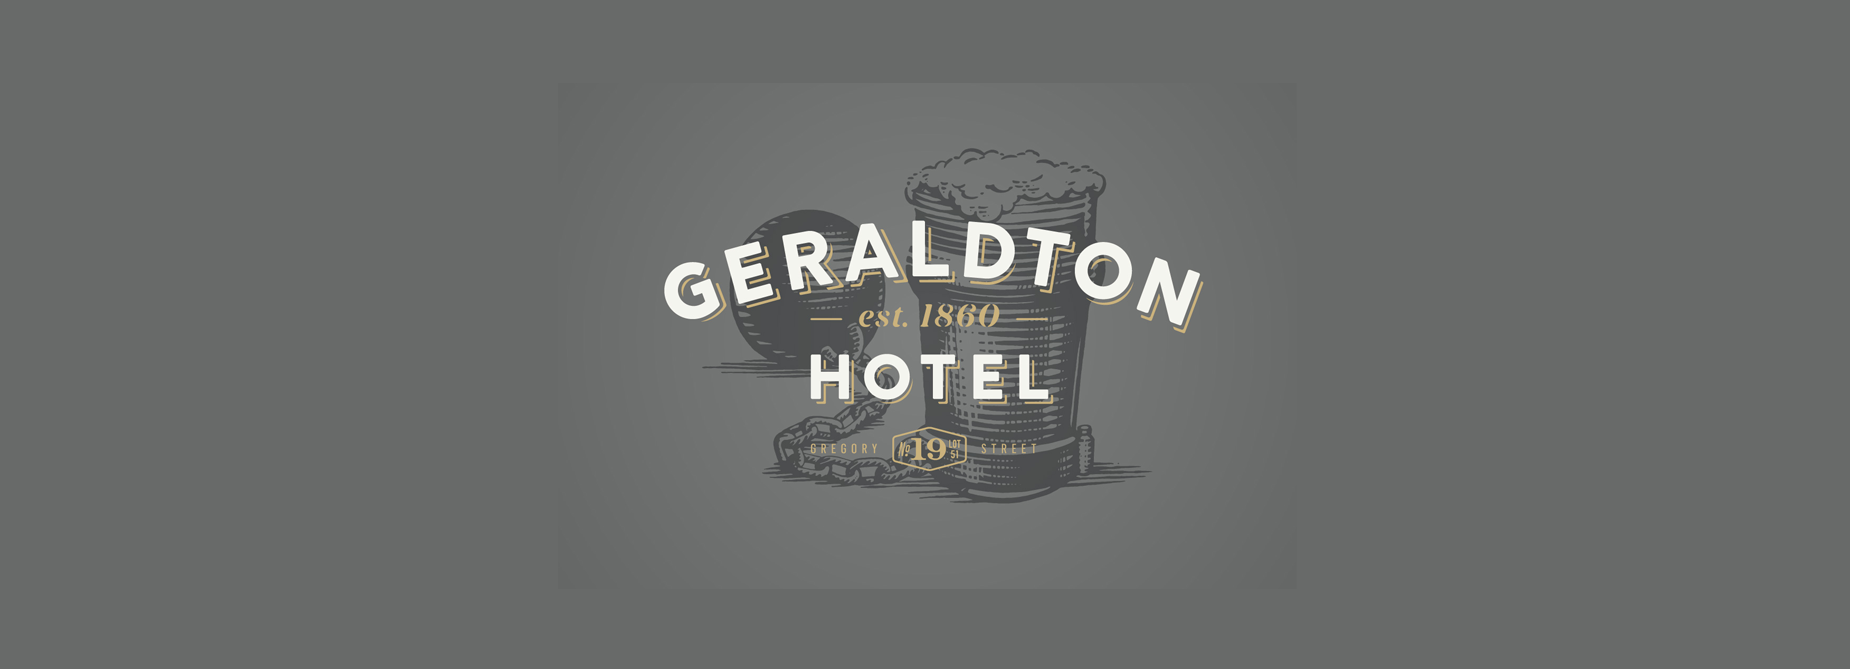 The Geraldton Hotel Logo